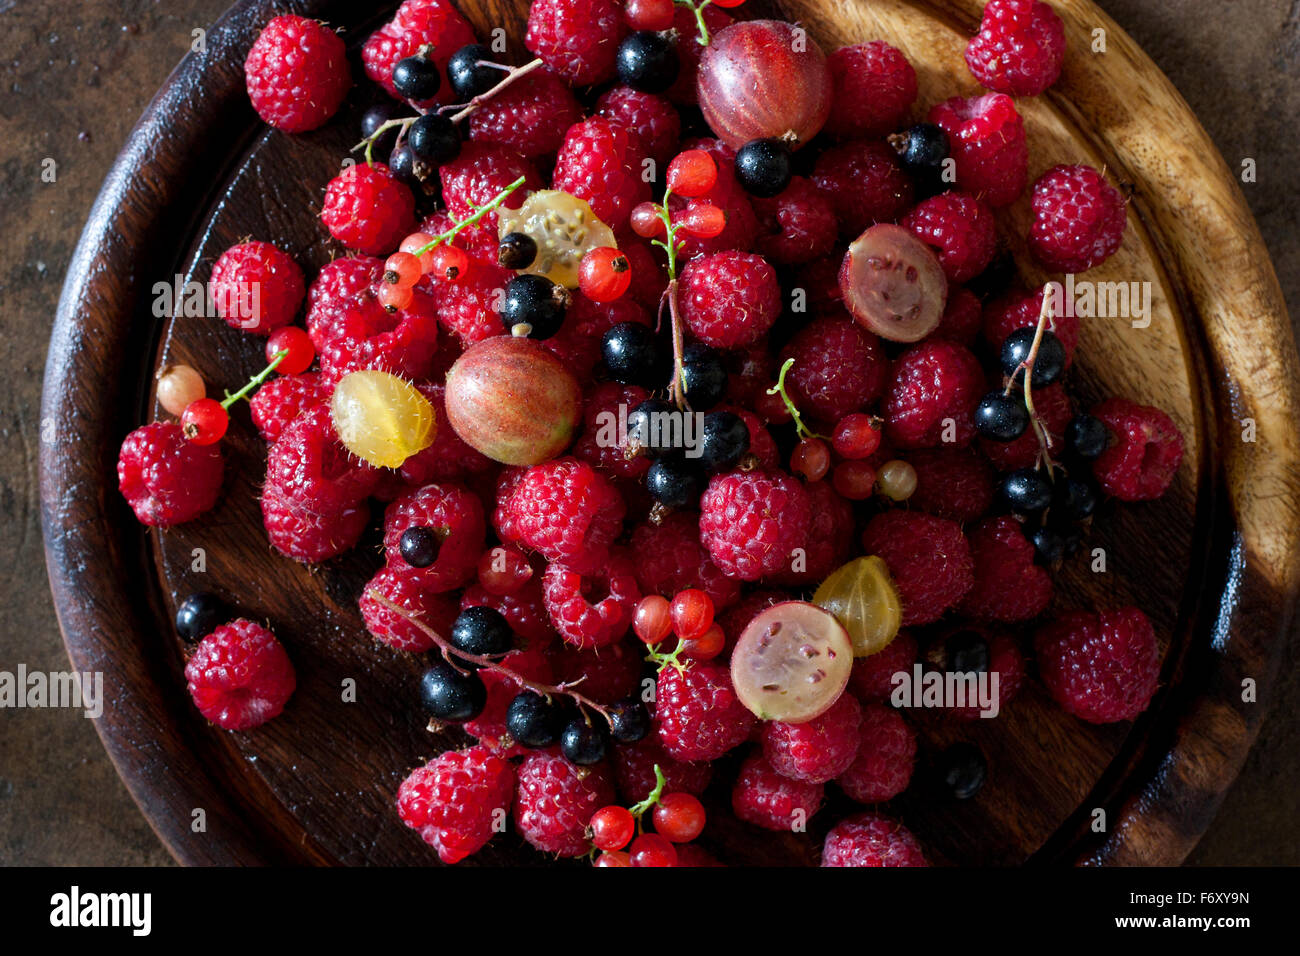 Mixed Berries on board - Stock Image